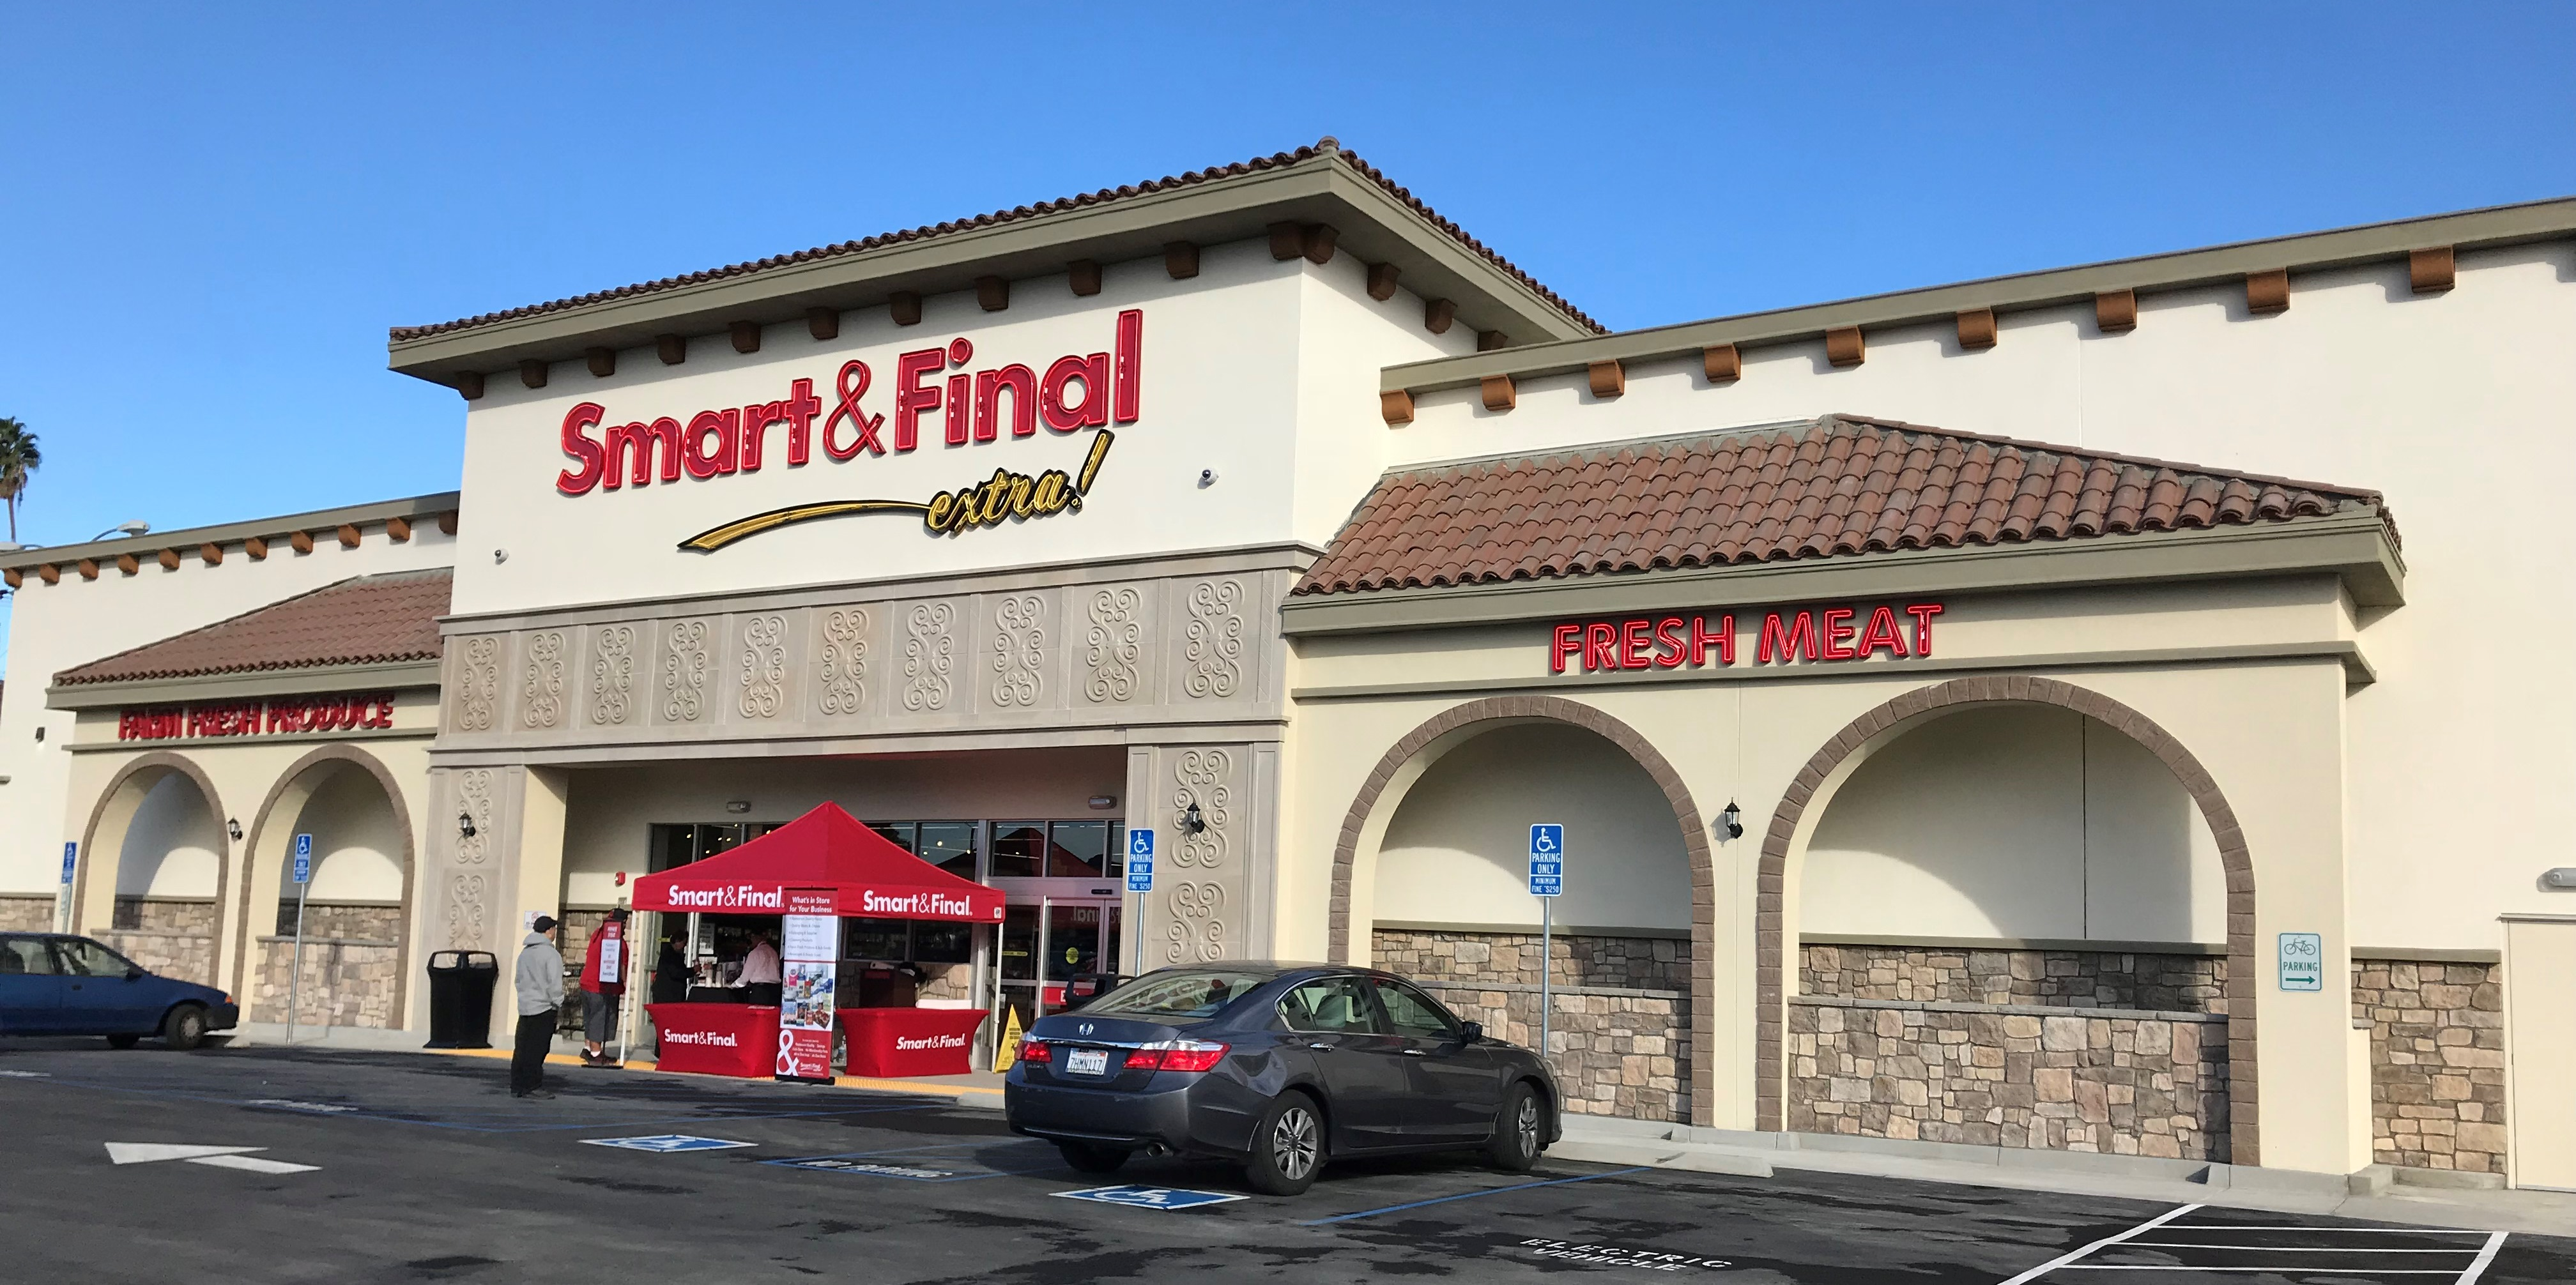 Smart & Final Store Front - Grocery Store in Azusa, CA